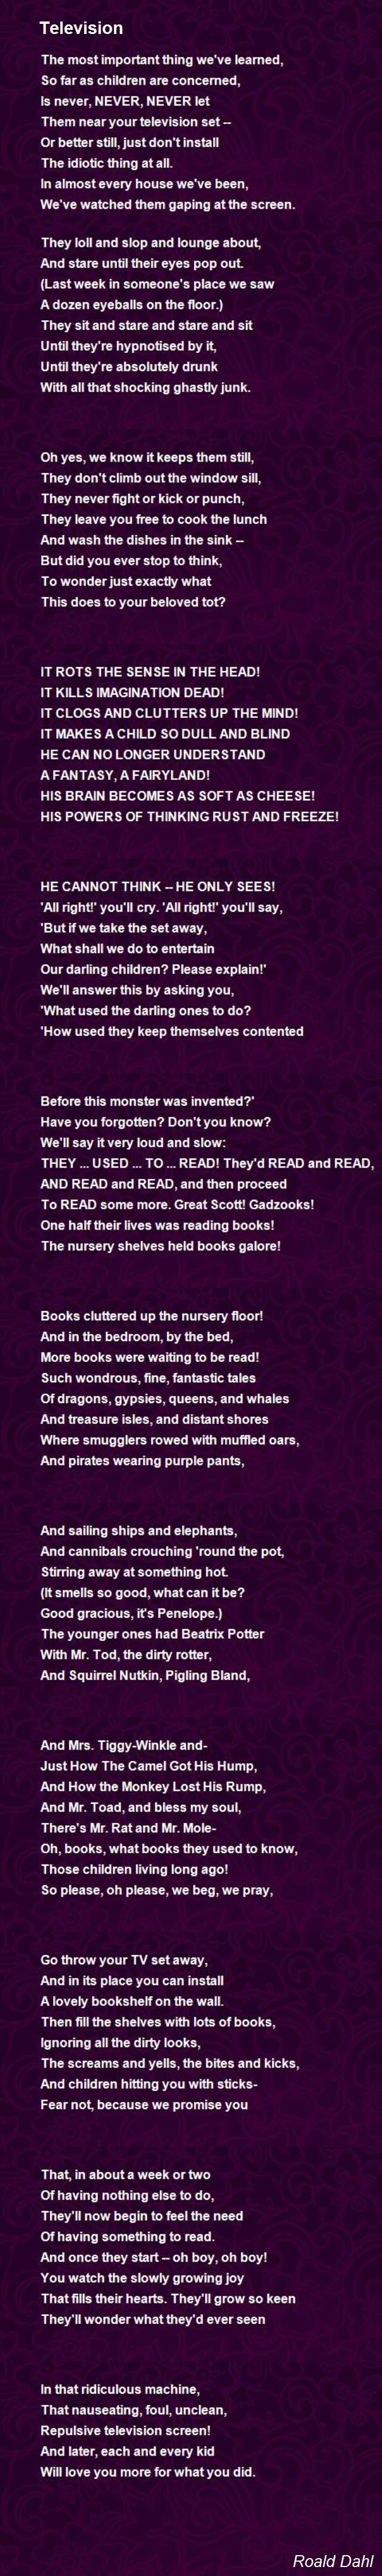 Television Poem by Roald Dahl - Poem Hunter